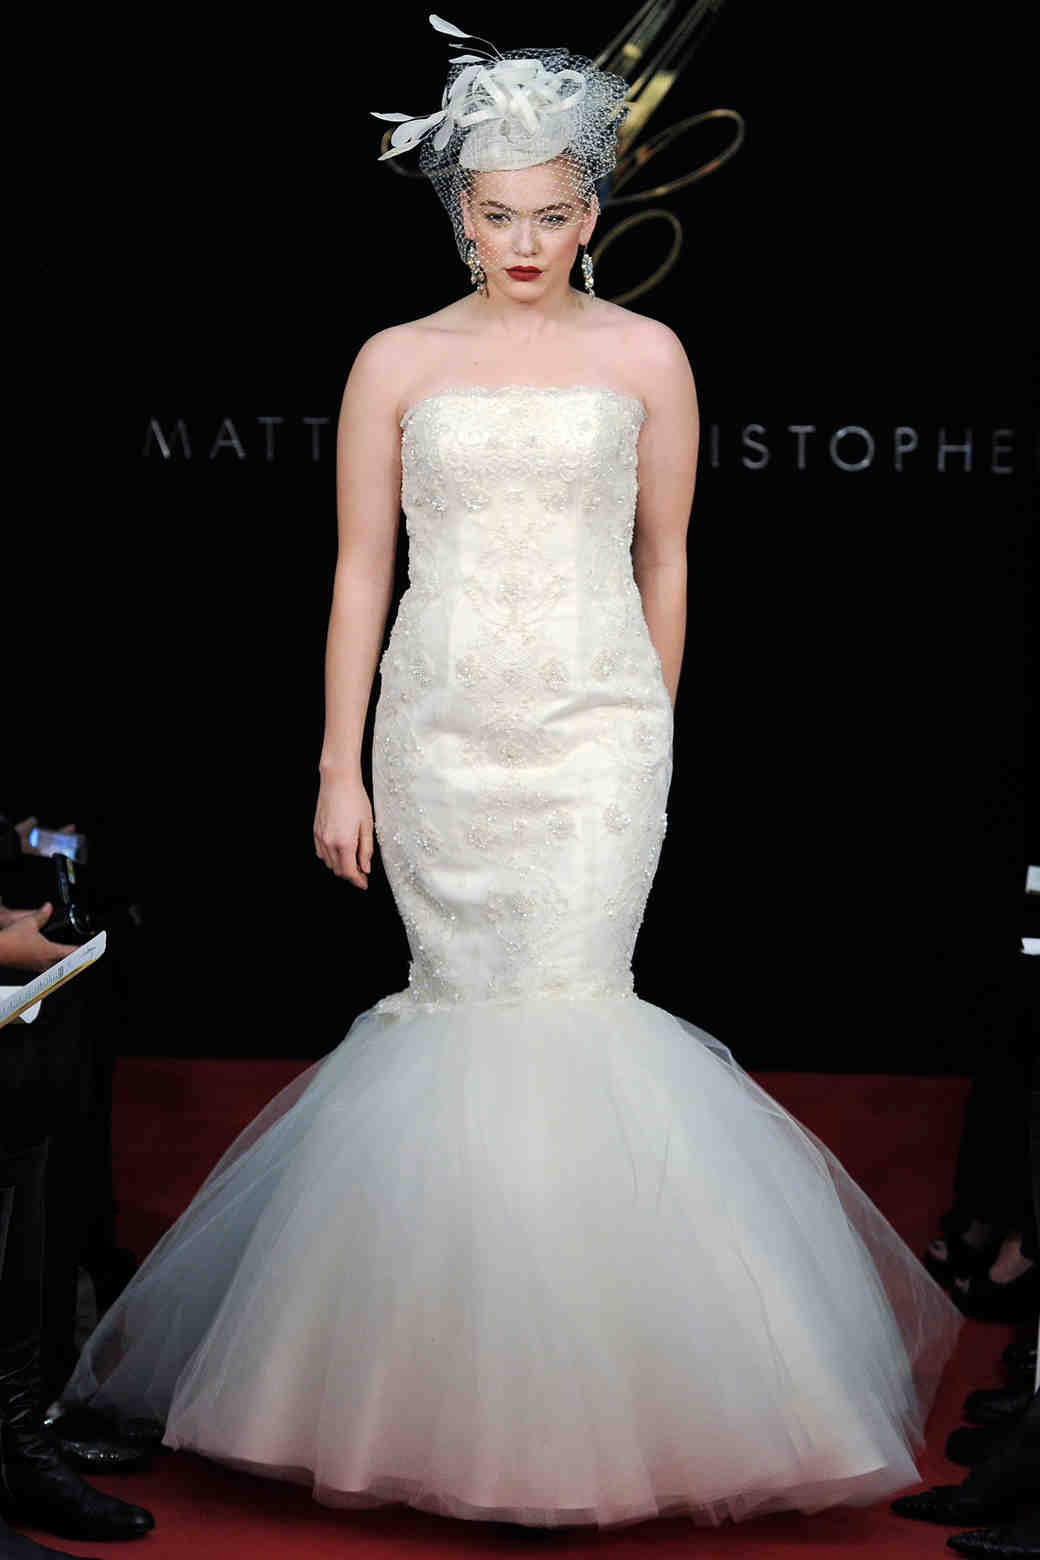 matthew-christo-fall2012-wd108109.jpg